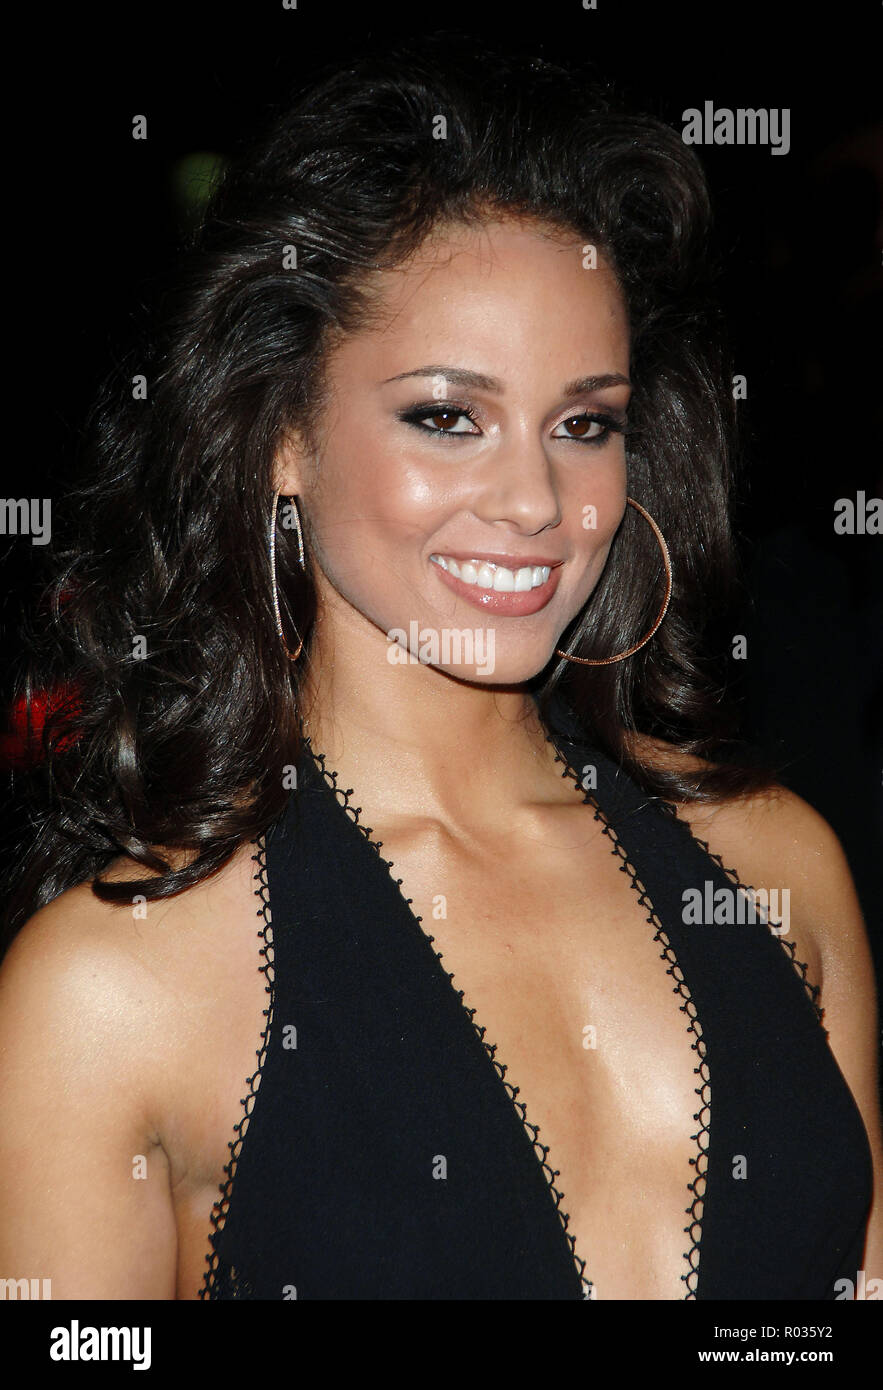 Alicia Keys arriving at the Smokin' Aces at the Chinese Theatre In Los Angeles. January 18, 2007.  smile portrait headshot black dress01_KeysAlicia_004 Red Carpet Event, Vertical, USA, Film Industry, Celebrities,  Photography, Bestof, Arts Culture and Entertainment, Topix Celebrities fashion /  Vertical, Best of, Event in Hollywood Life - California,  Red Carpet and backstage, USA, Film Industry, Celebrities,  movie celebrities, TV celebrities, Music celebrities, Photography, Bestof, Arts Culture and Entertainment,  Topix, headshot, vertical, one person,, from the year , 2007, inquiry tsuni@Ga - Stock Image